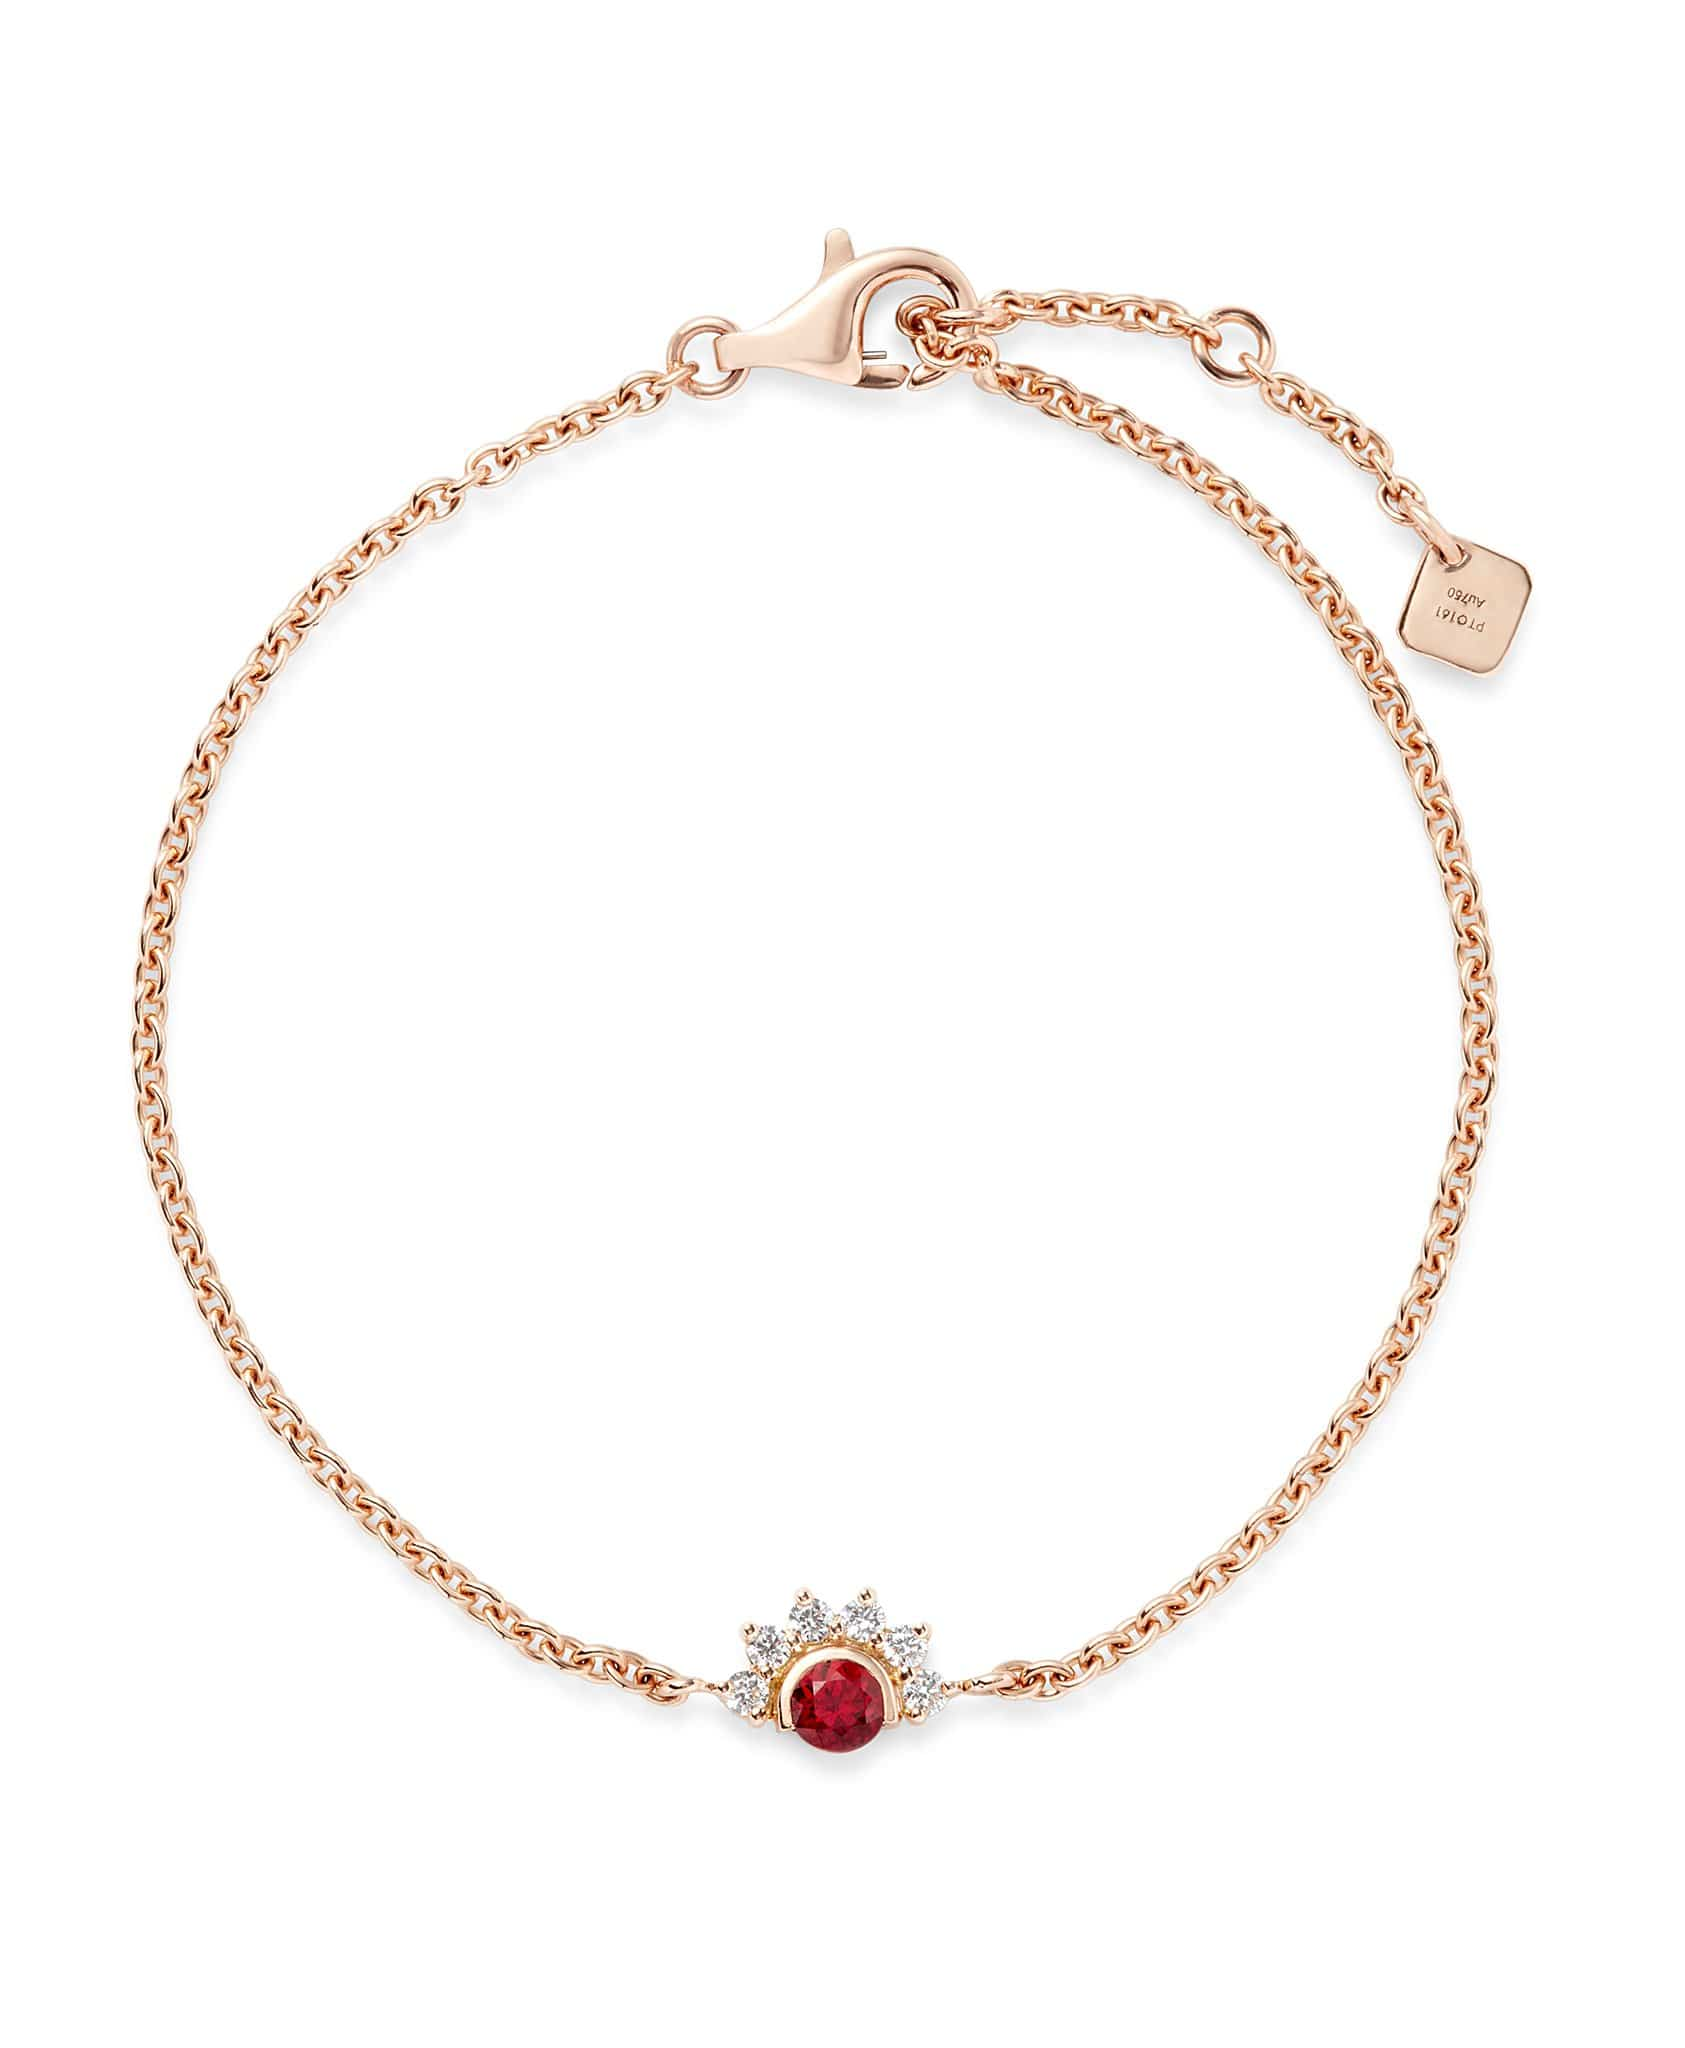 Red Spinel Bracelet: Discover Luxury Fine Jewelry | Nouvel Heritage